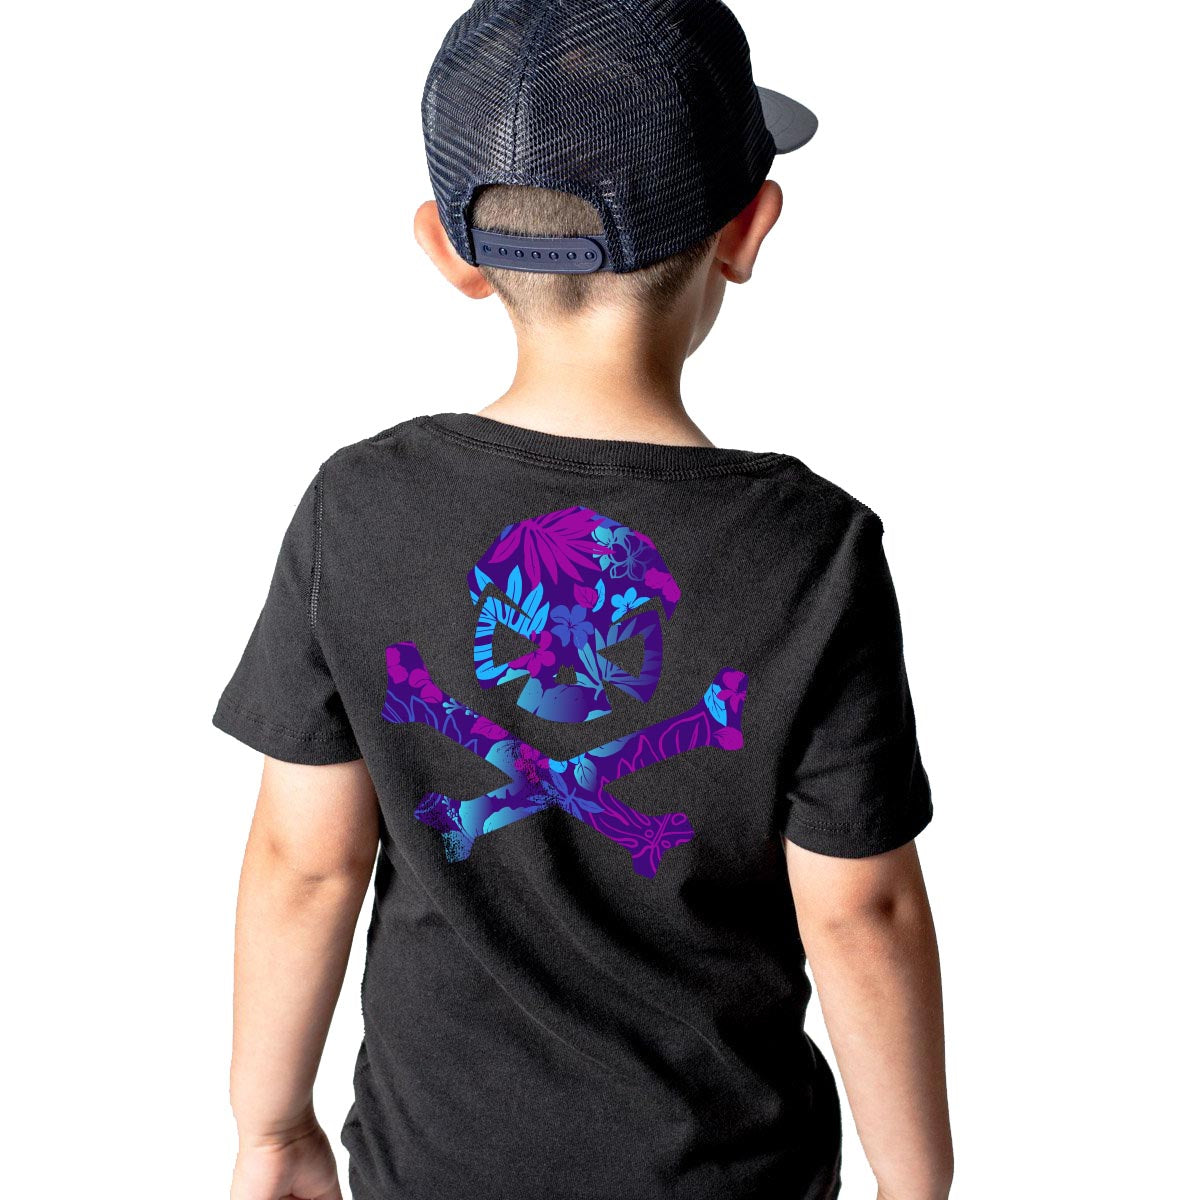 Hitter Five-0 - Youth - Black/Purple - T-Shirts - Pipe Hitters Union